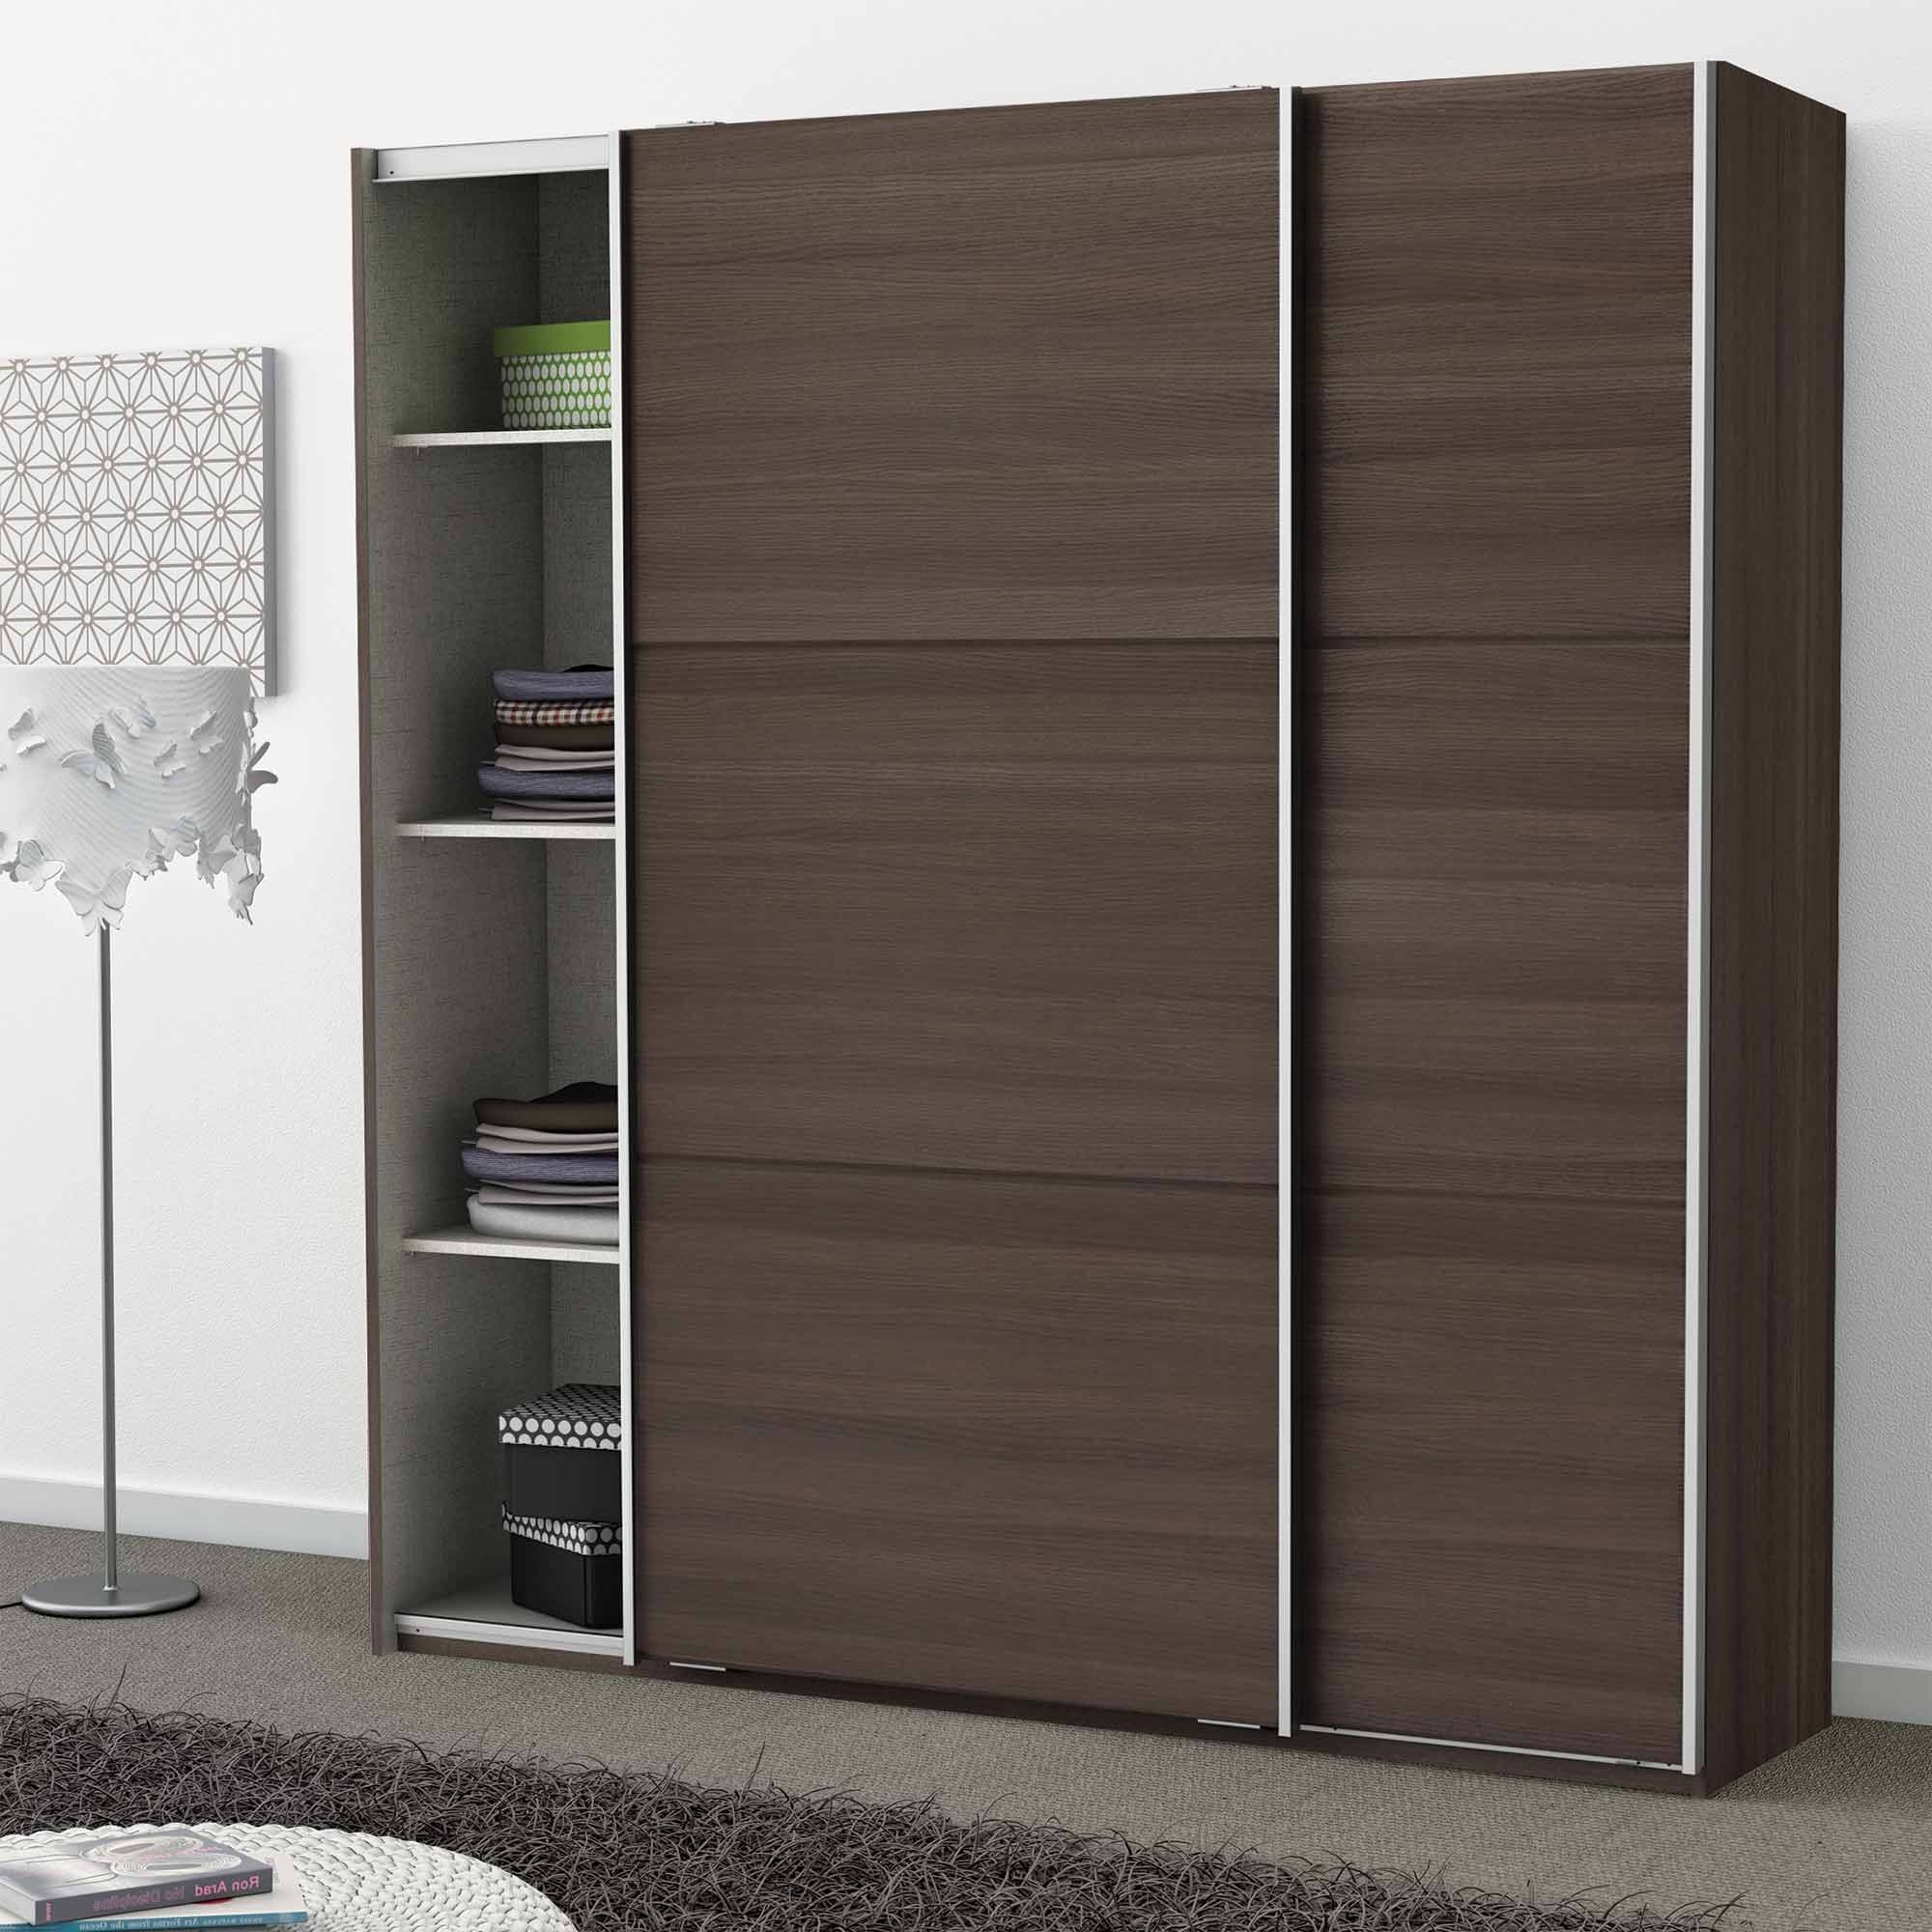 armoire basse chambre porte coulissante armoire id es. Black Bedroom Furniture Sets. Home Design Ideas